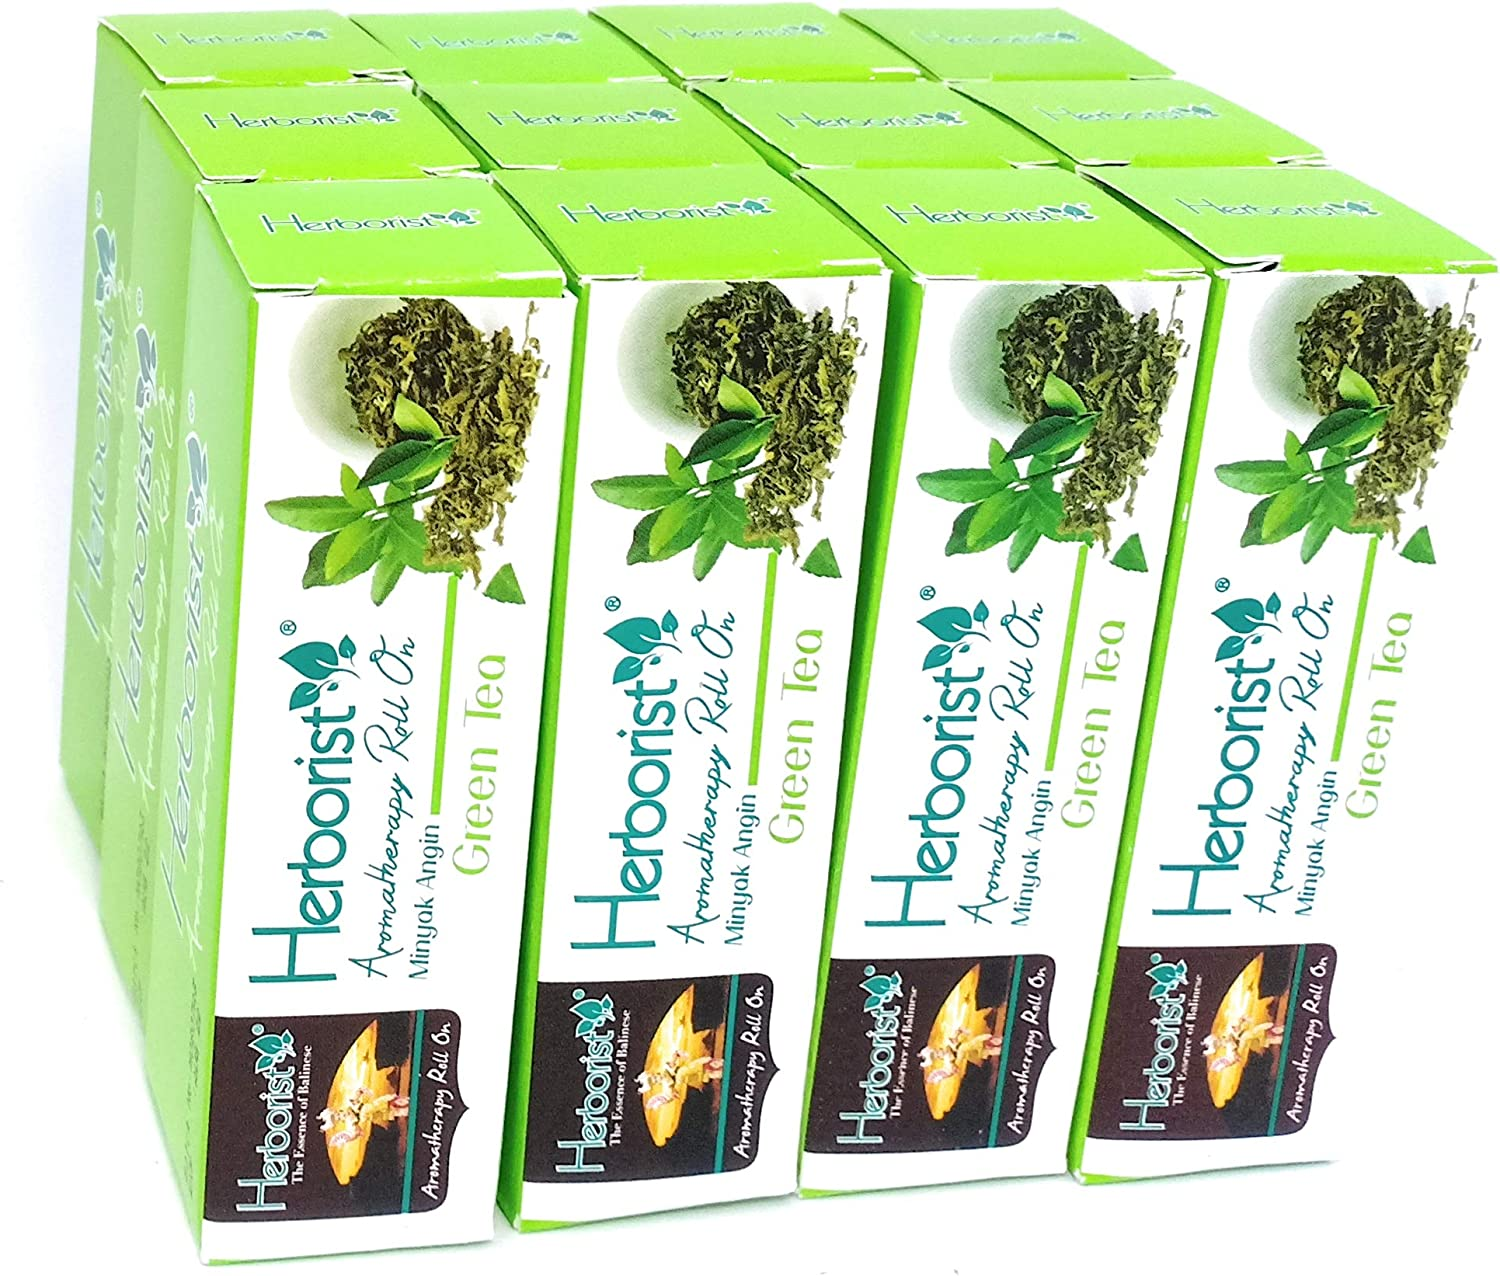 Herborist Aromatherapy Roll on Oil New Orleans Mall - Green ml Tea 1 Now free shipping 10 Pack of